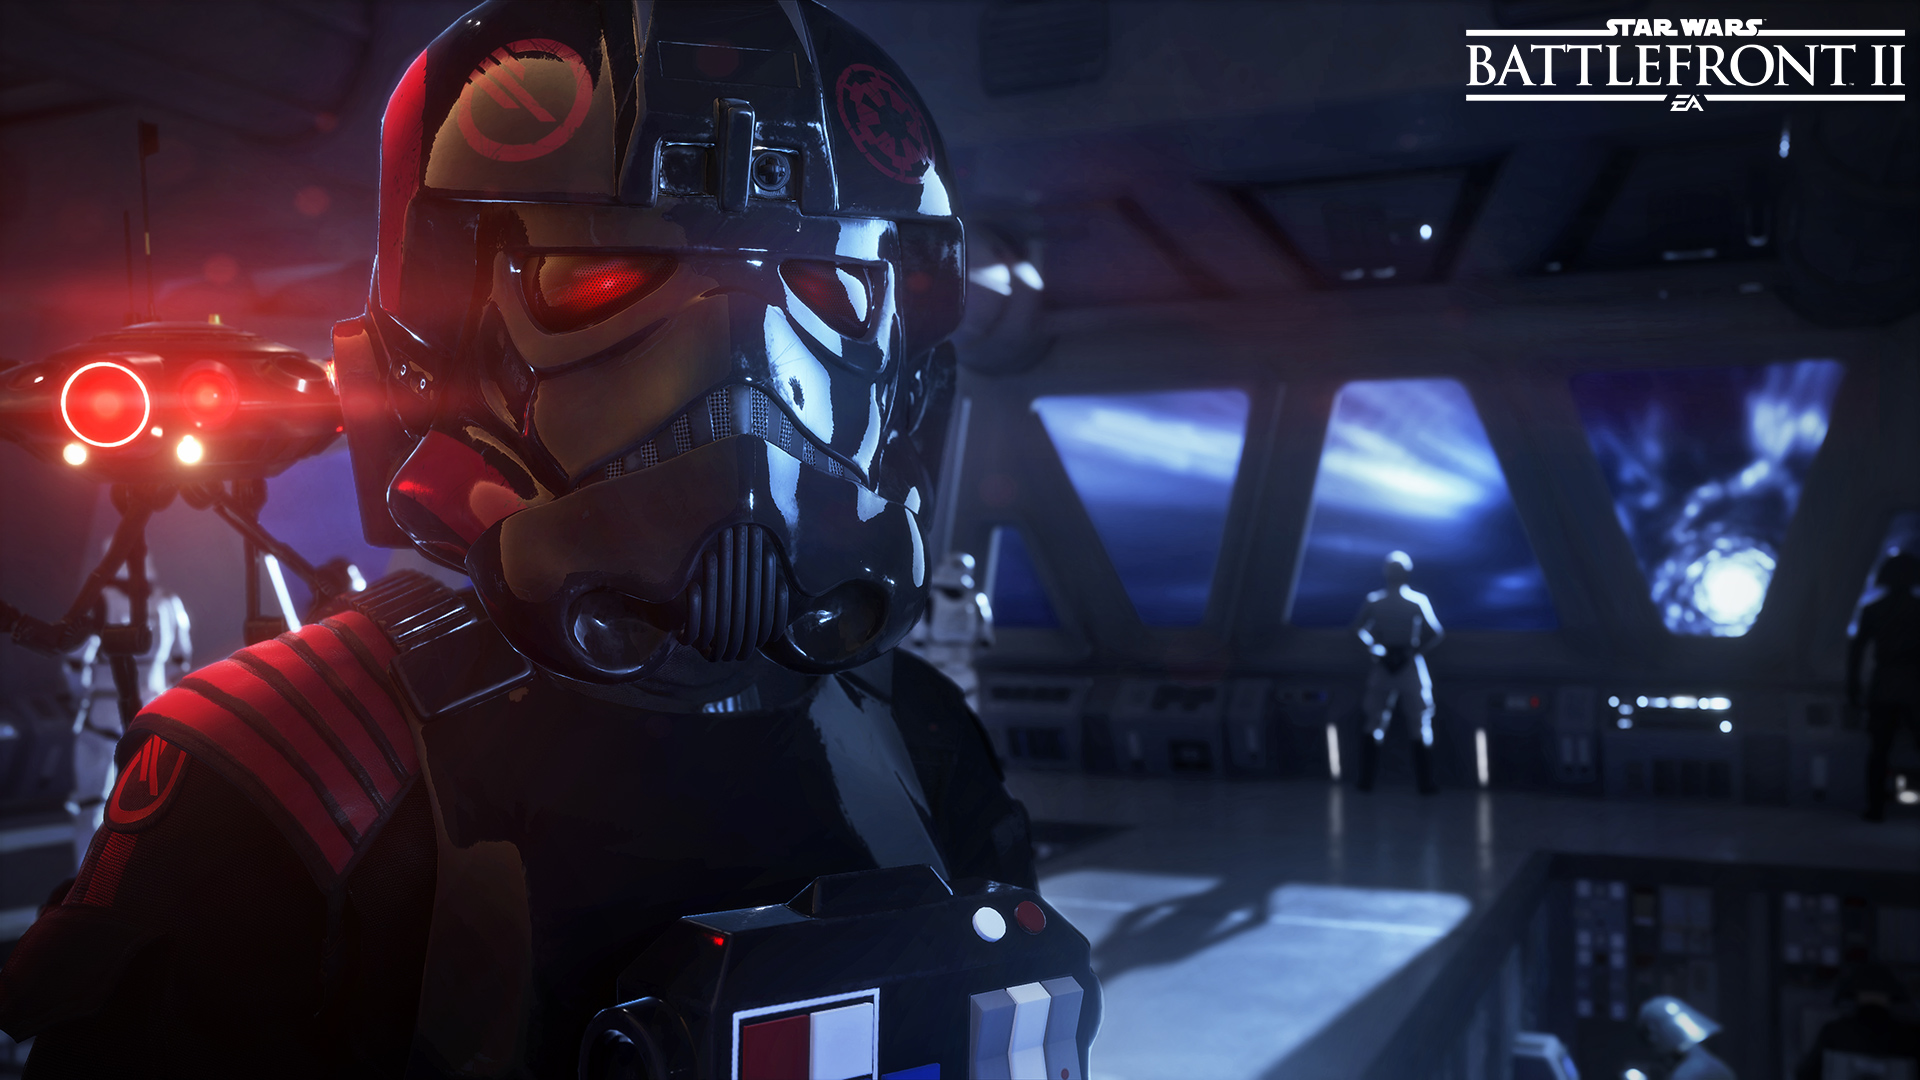 More Star Wars Battlefront Campaign Details Revealed